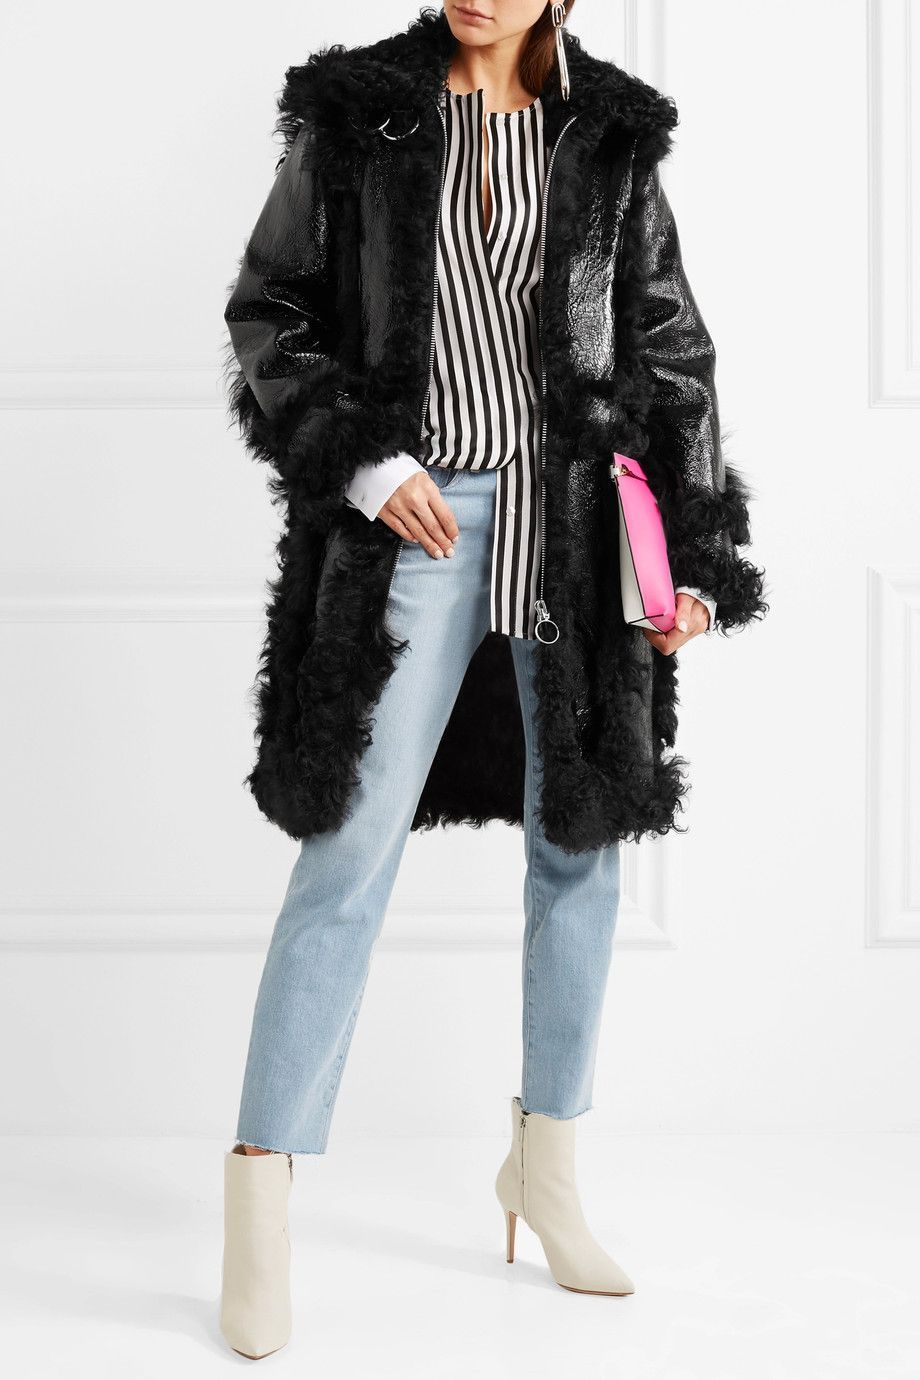 21 Winter Outfits With Patent Leather Coats forecasting